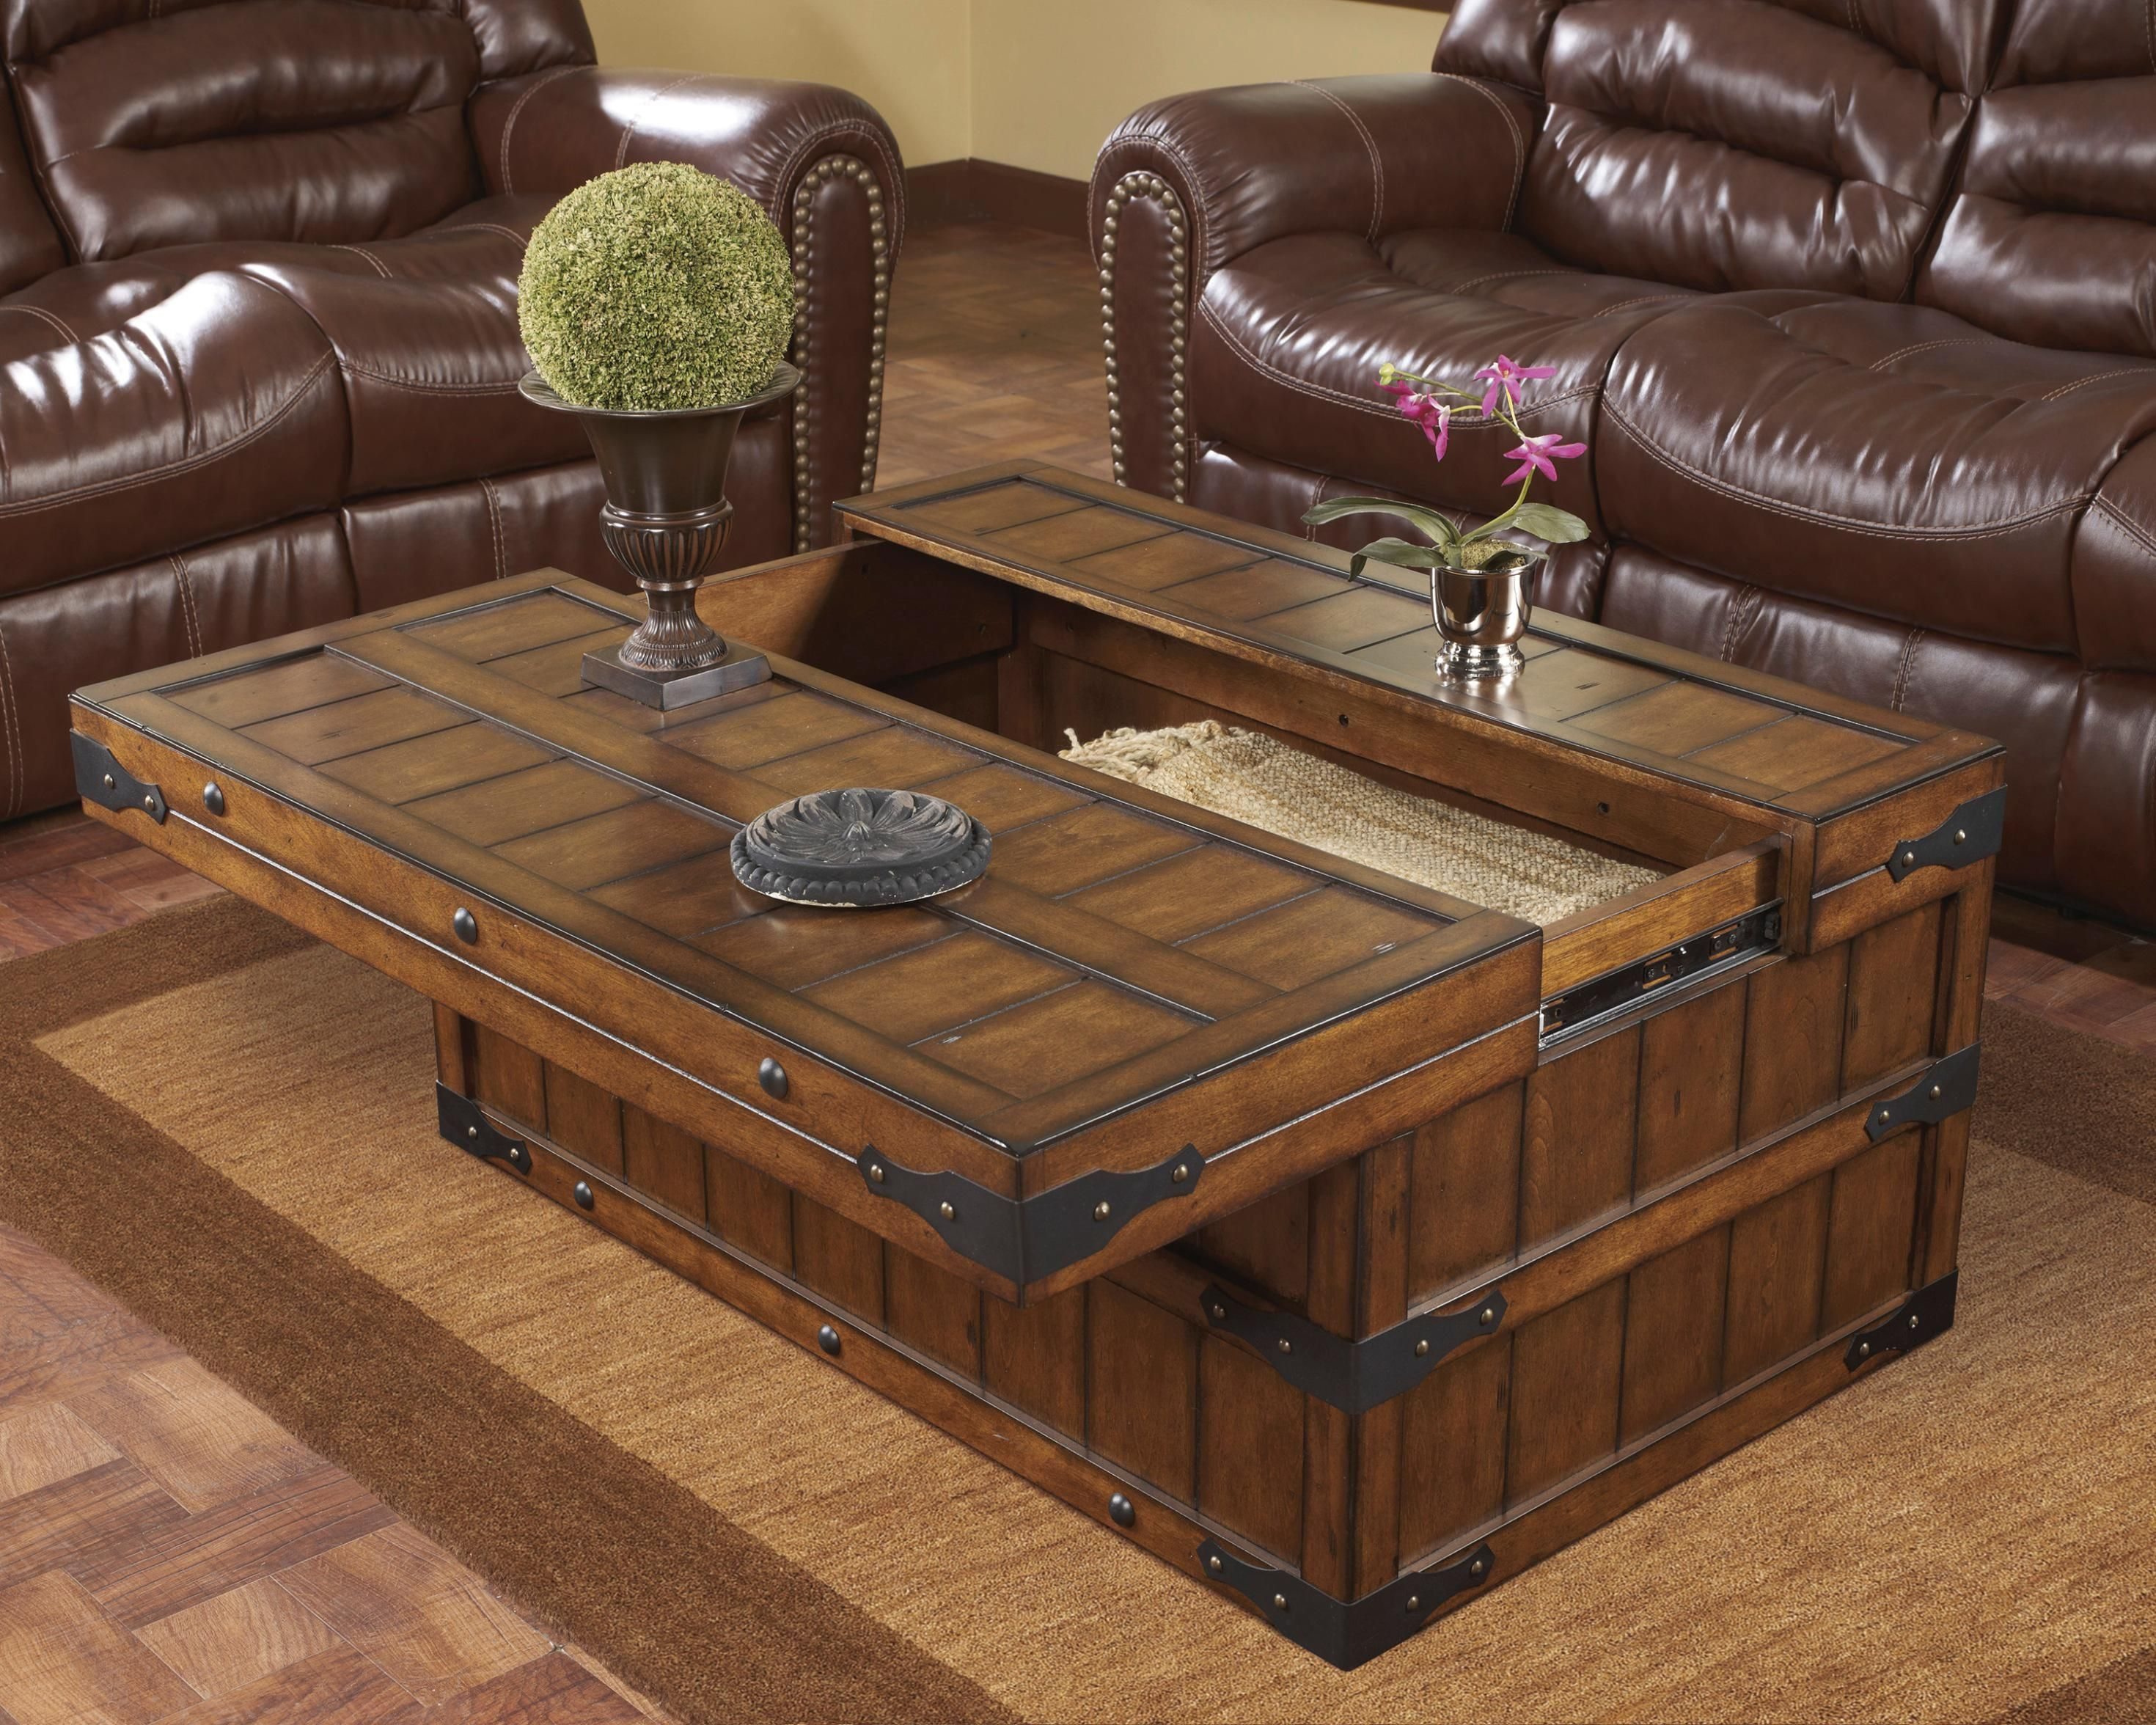 Wine Storage Trunk Coffee Table Modern Coffee Table Functional